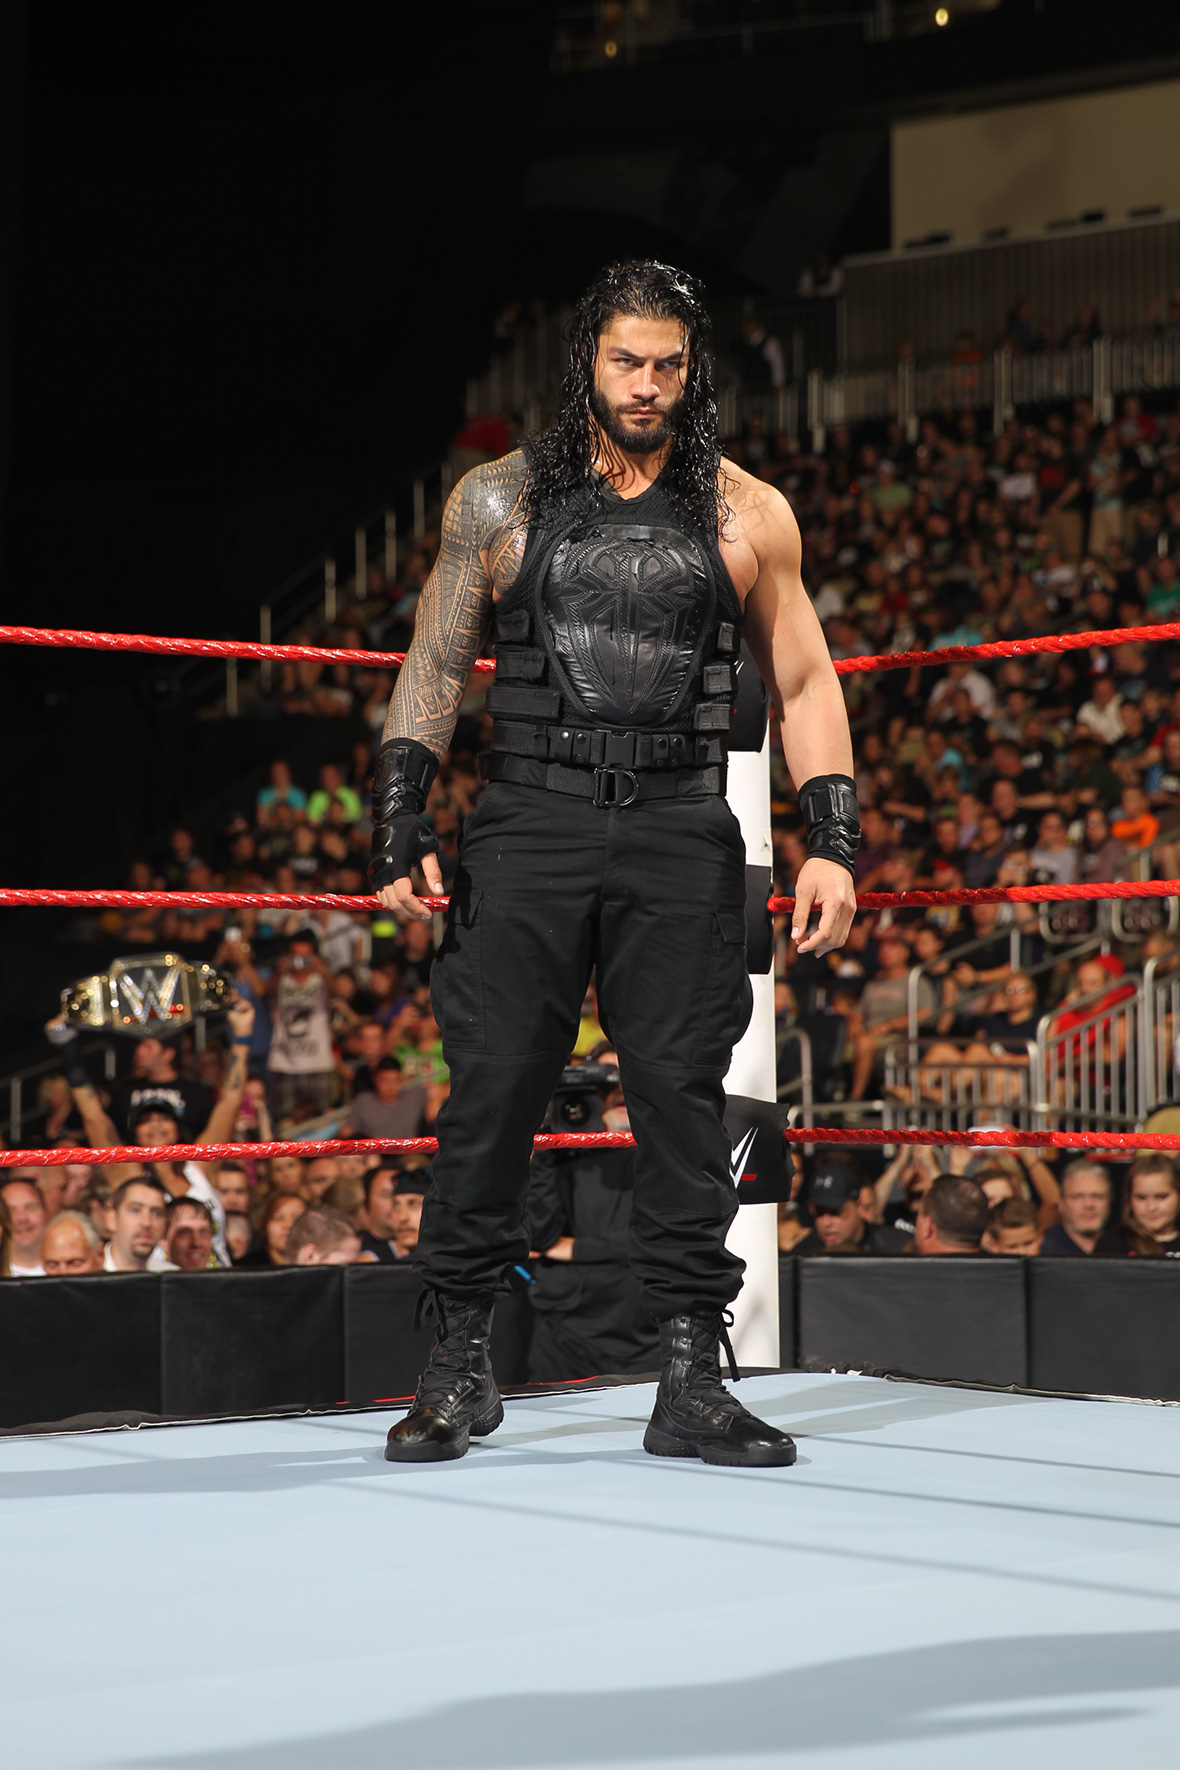 Wallpaper For Girls Room Uk The Reason Why Wwe Planned For Roman Reigns To Enter The